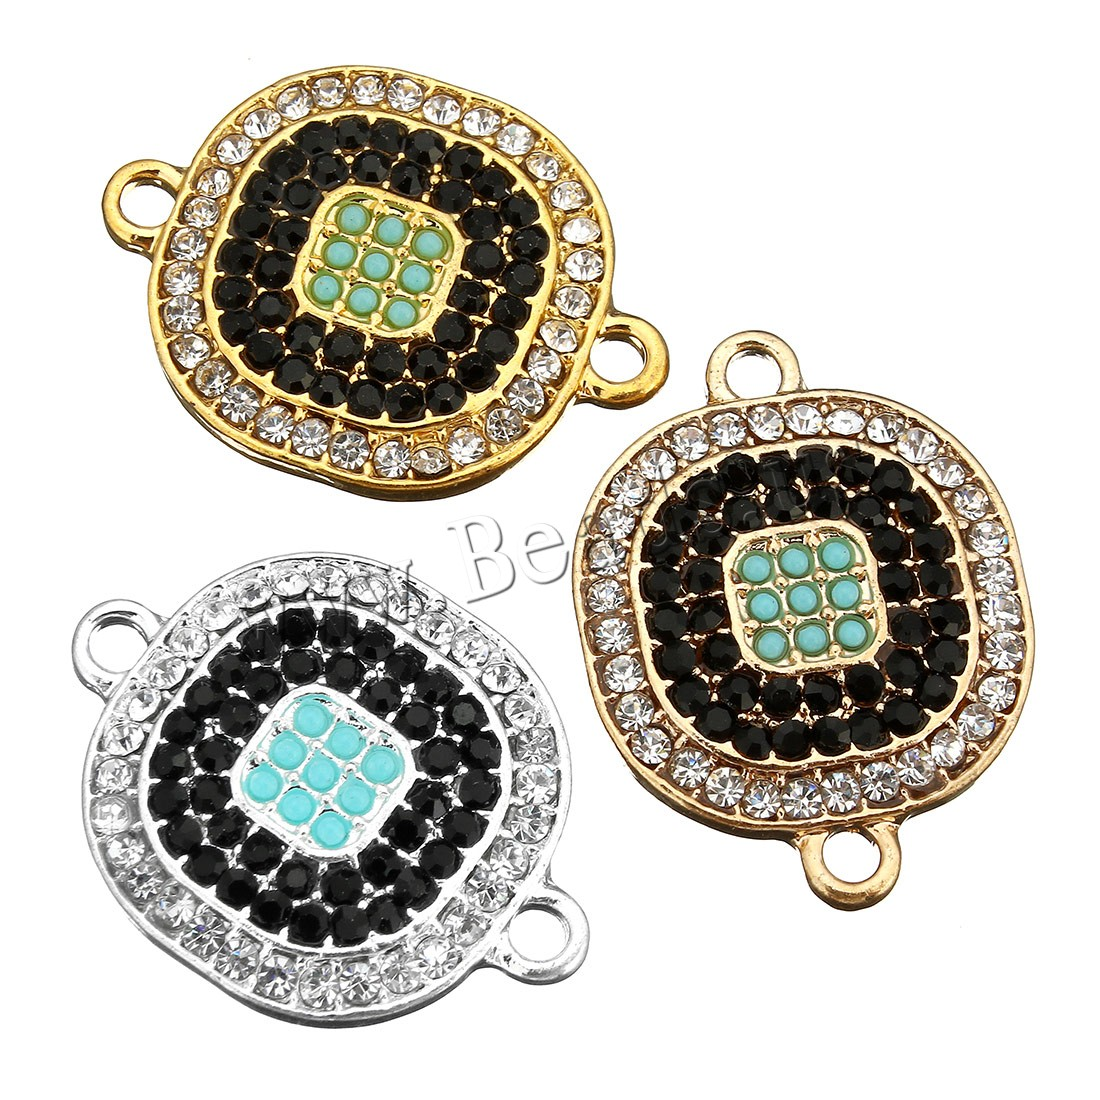 Buy Cubic Zirconia Micro Pave Brass Connector Glass Seed Beads plated micro pave cubic zirconia & 1/1 loop colors choice 19x25x3mm Hole:Approx 2mm 5 Sold Lot